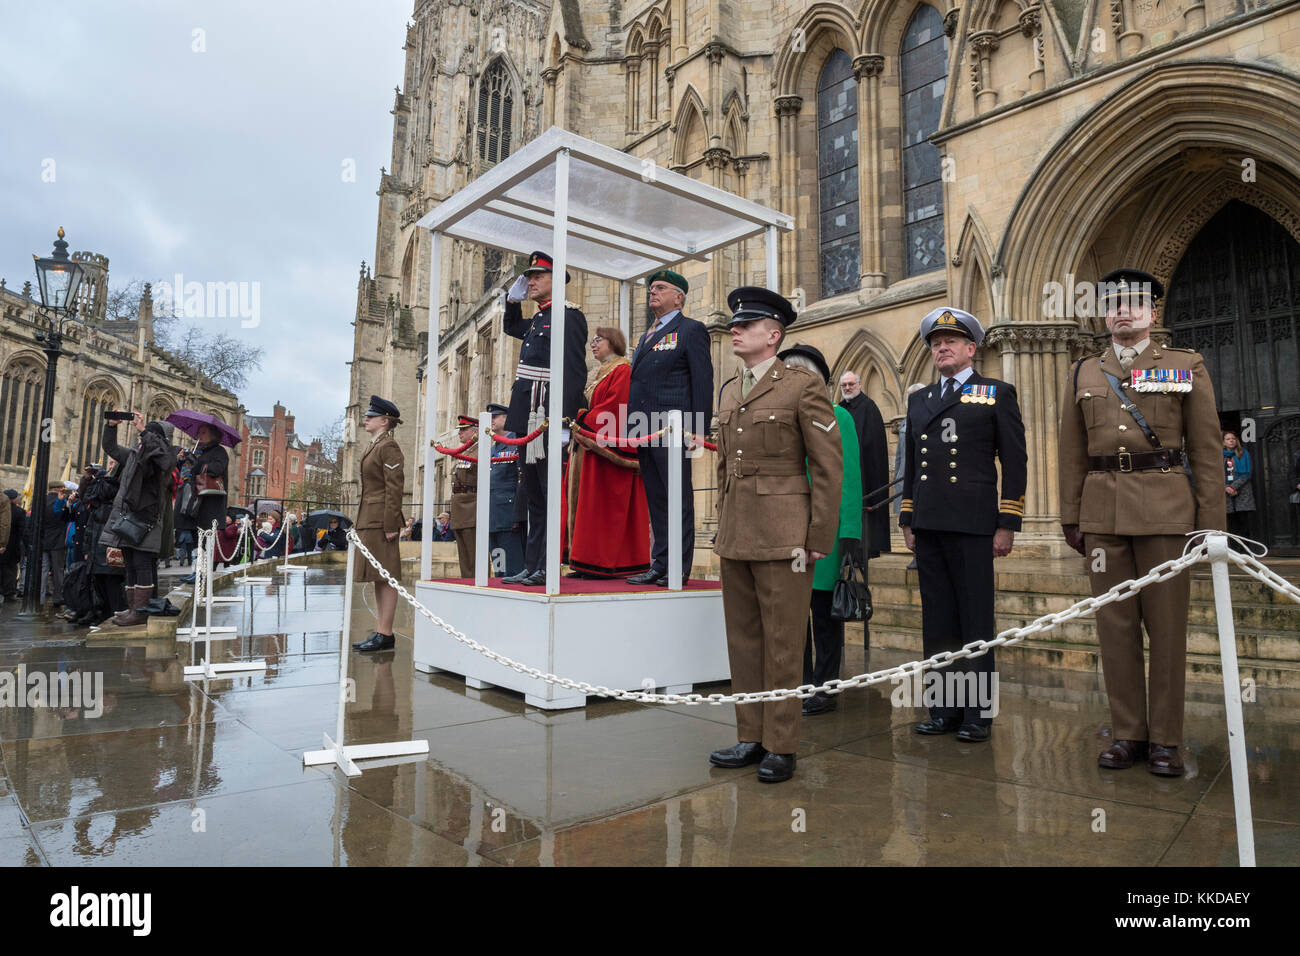 Podium, dignitaries, officers & soldiers outside York Minster to commemorate 50th anniversary of British withdrawal - Stock Image